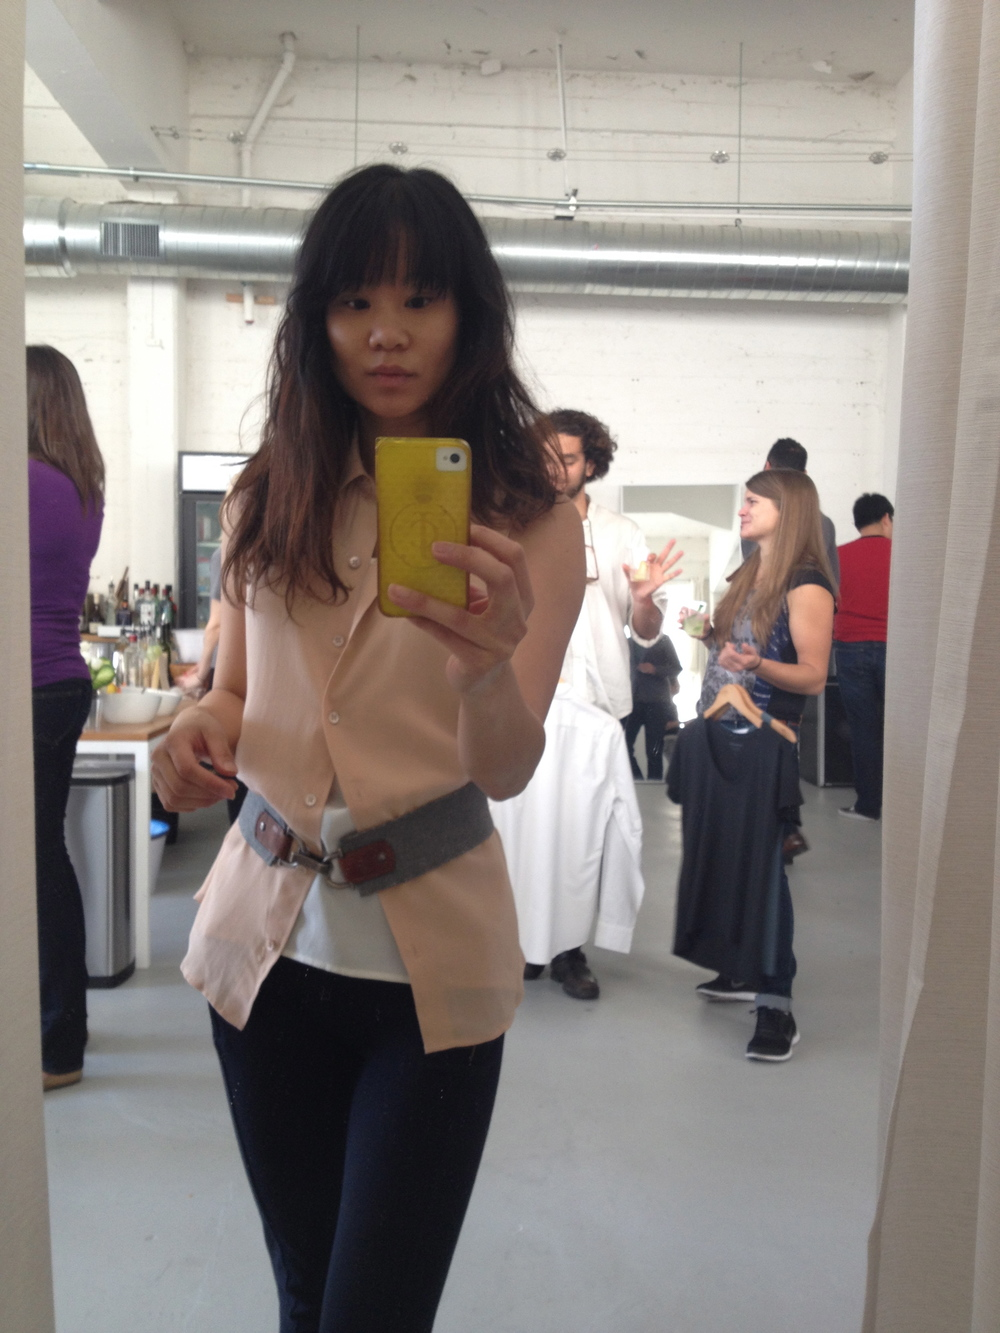 Selfie. I like Everlane's soft fabrics and translatable styles. They're ready for work and play!